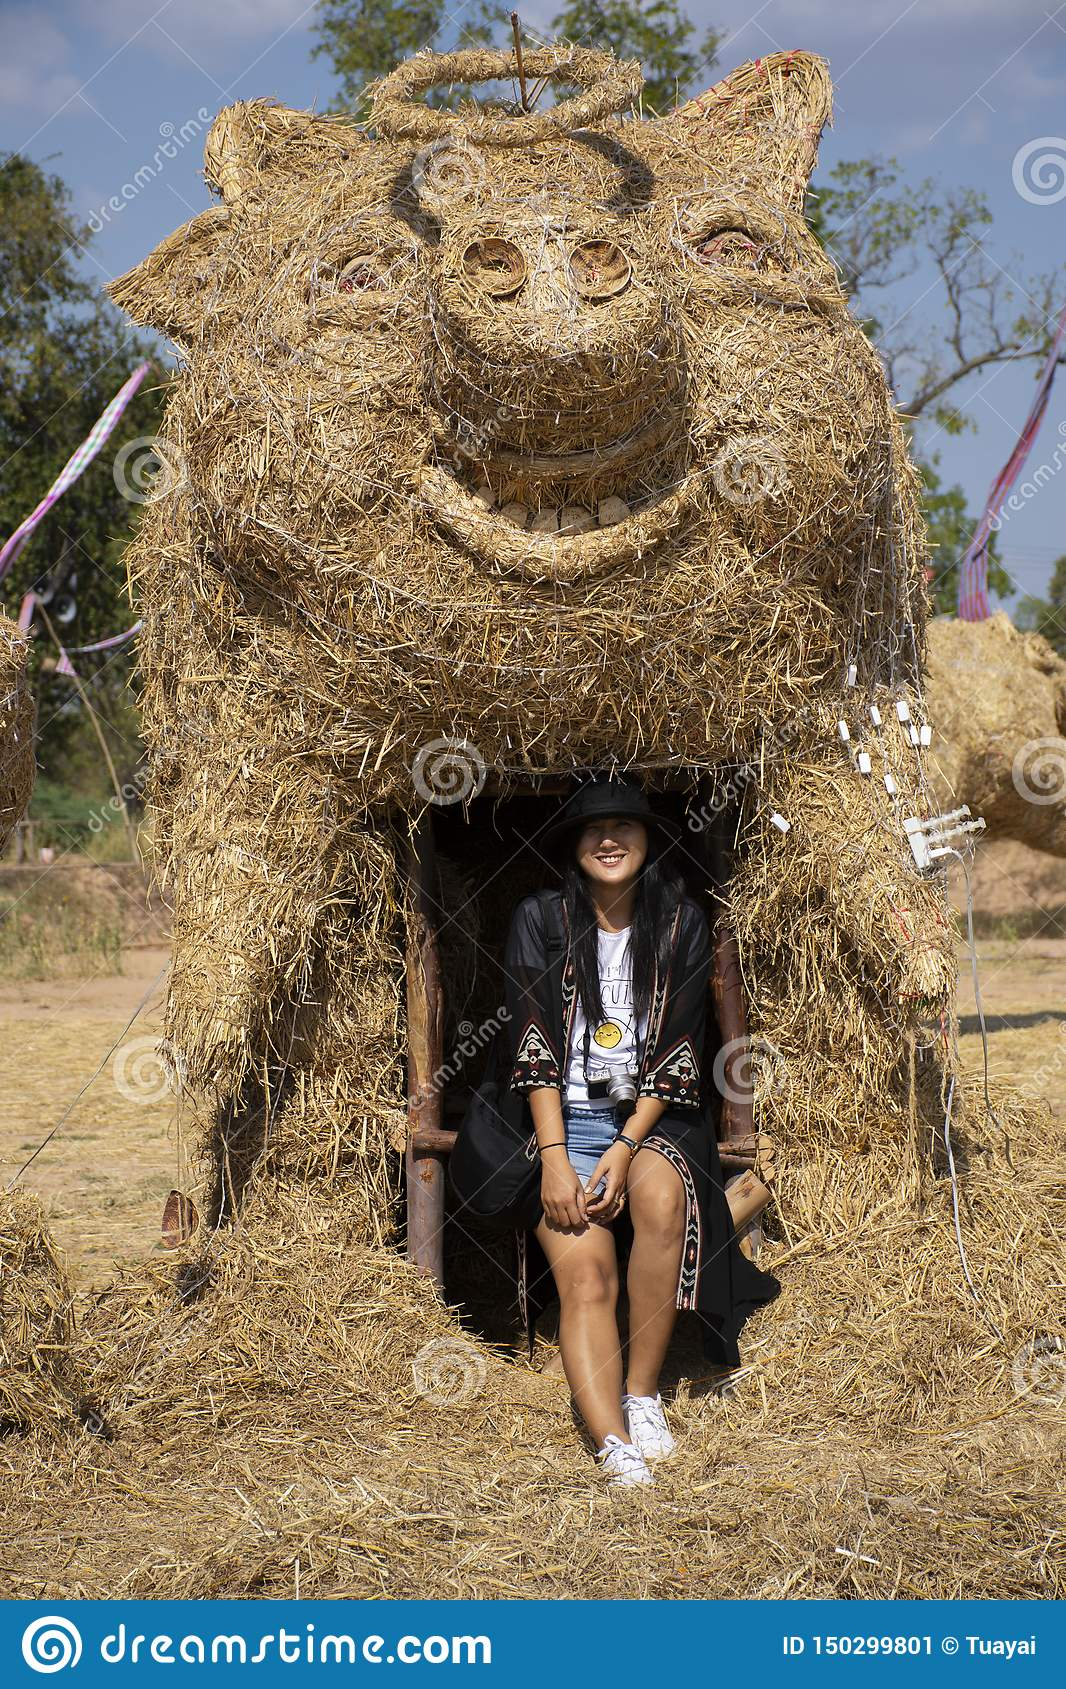 Travelers thai women people travel visit and posing portrait for take photo straw puppets or straws man figure Festiva